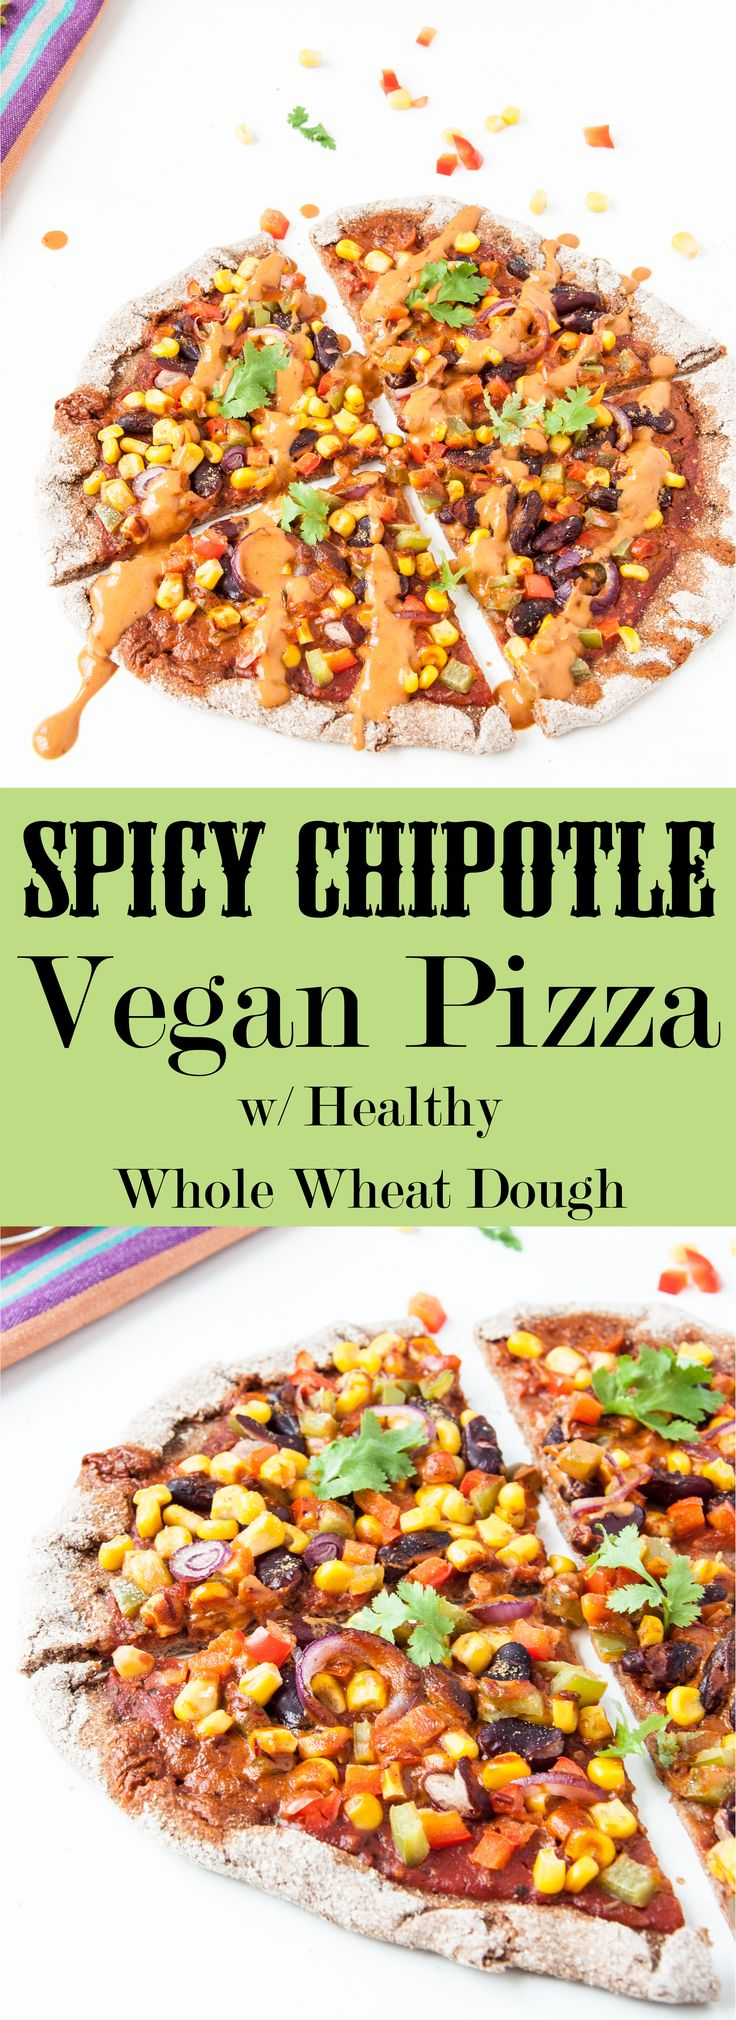 9997 best vegan food recipes images on pinterest vegan recipes spicy chipotle vegan pizza recipe w healthy whole wheat pizza dough veganfamilyrecipes forumfinder Gallery